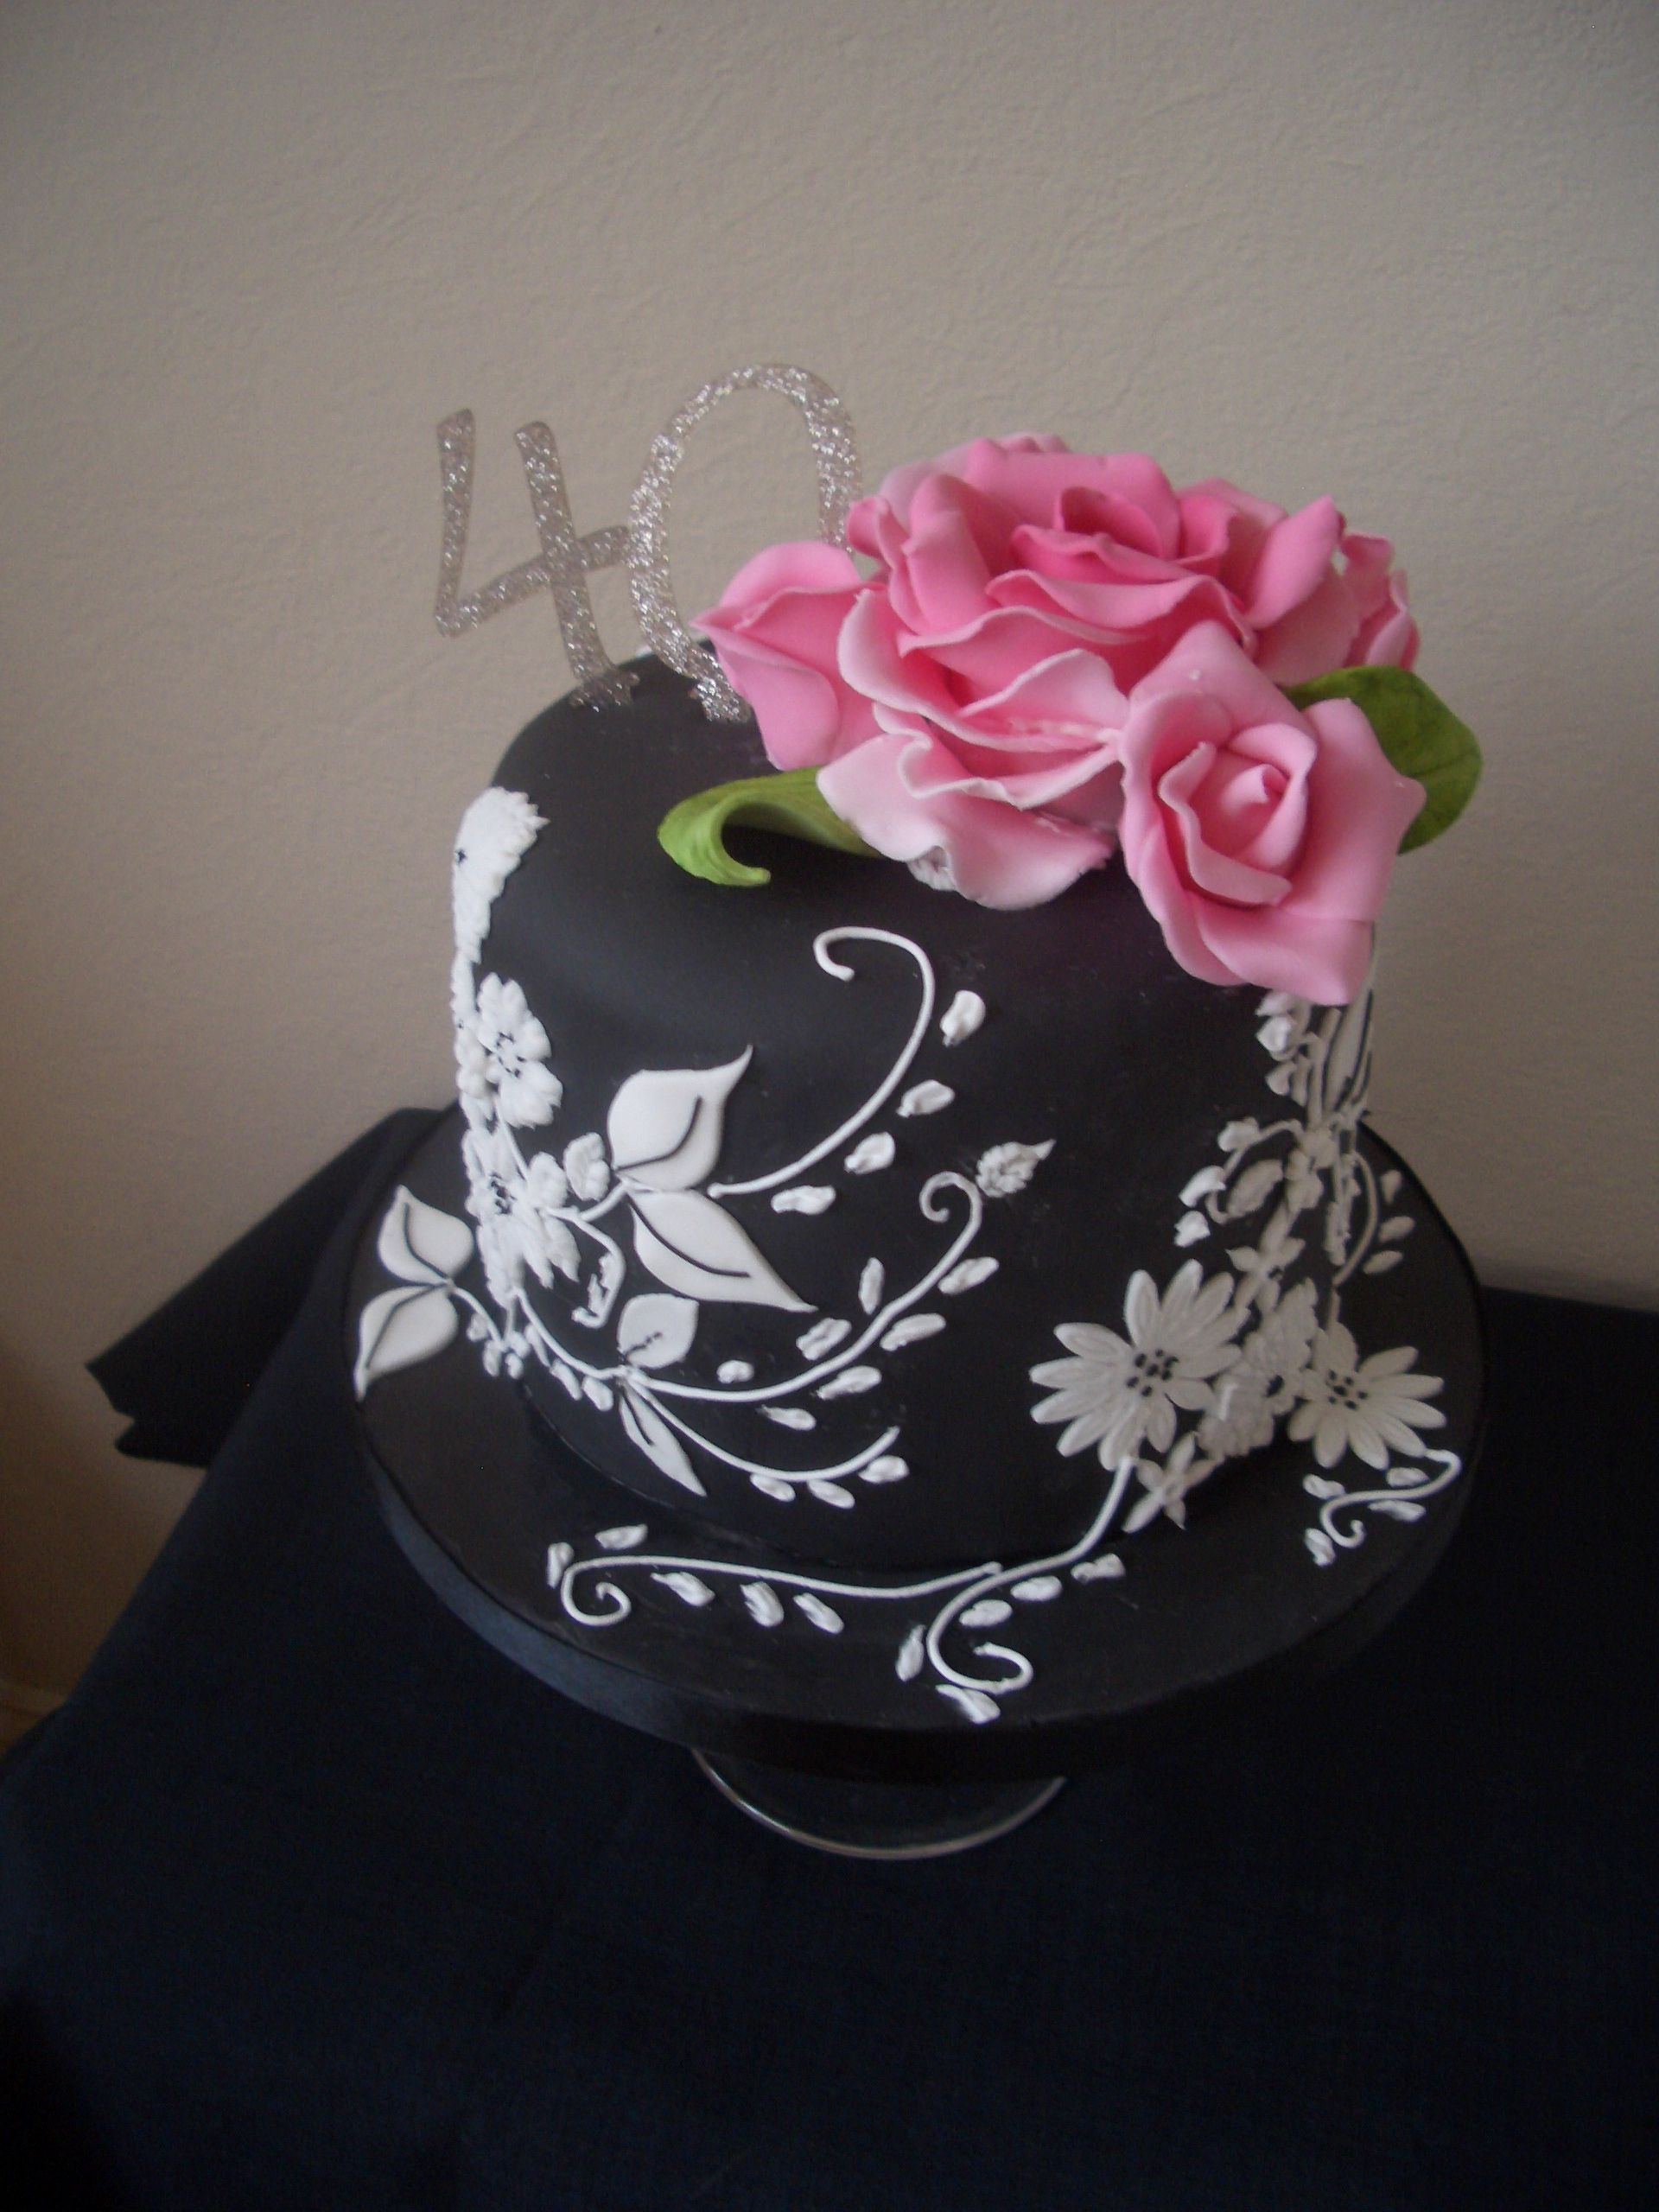 Pink Ombre Cake With Black And White Fondant And Gumpaste Flowers